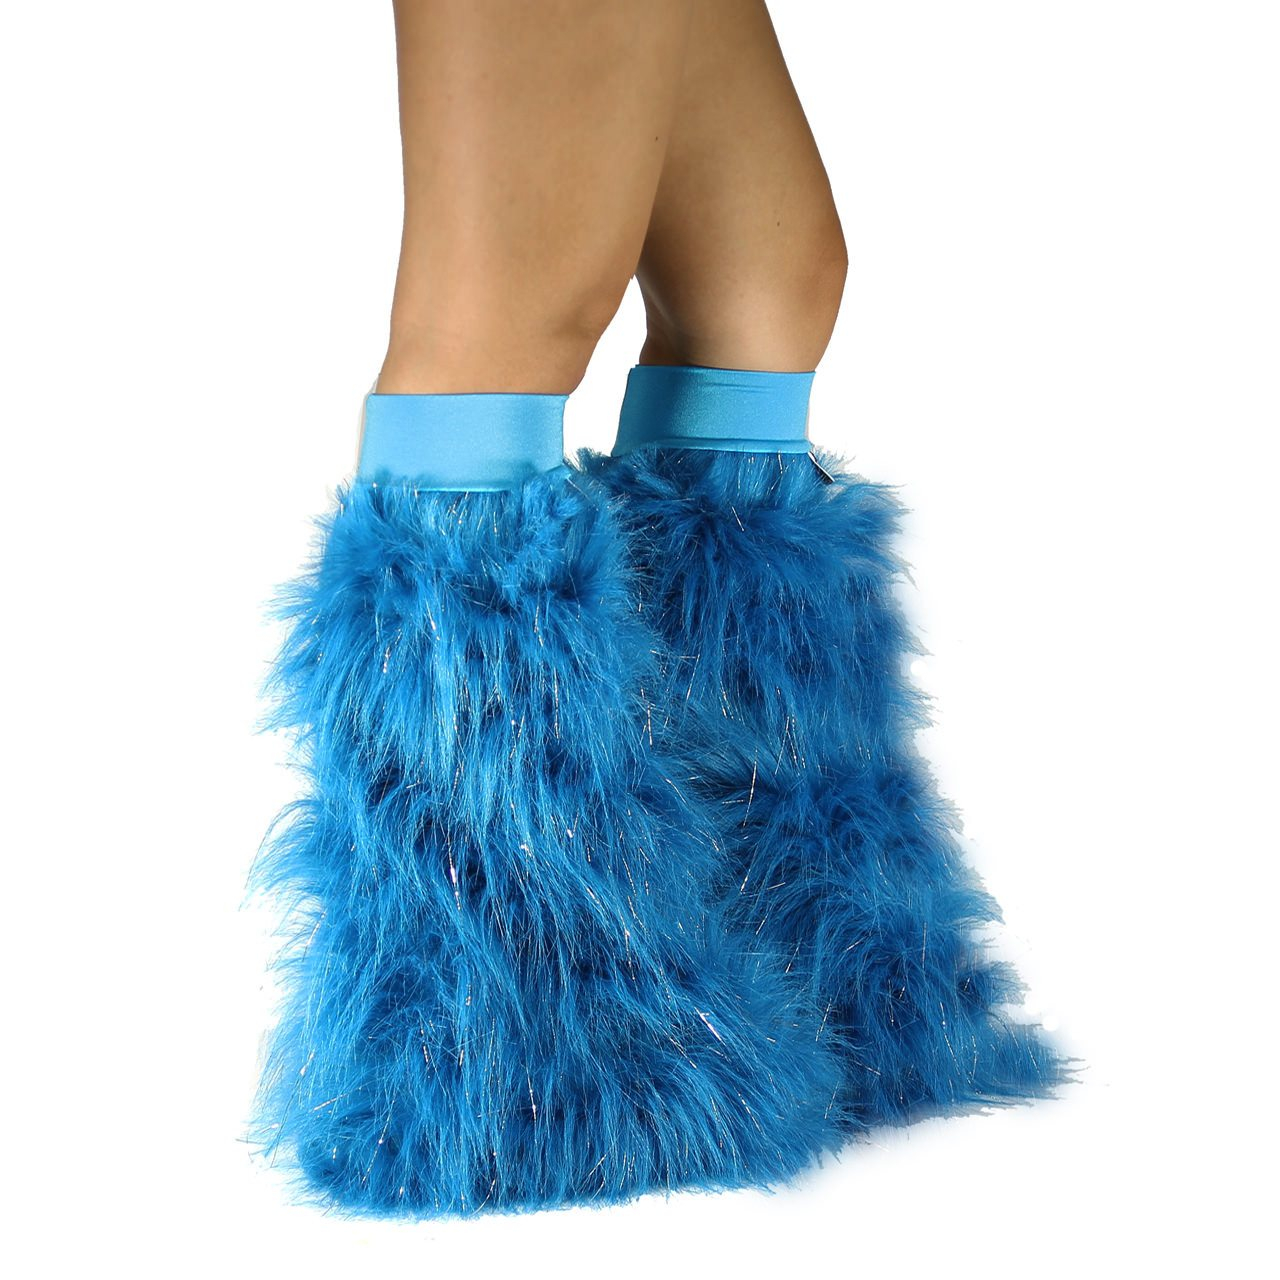 Turquoise Sparkle Fluffies